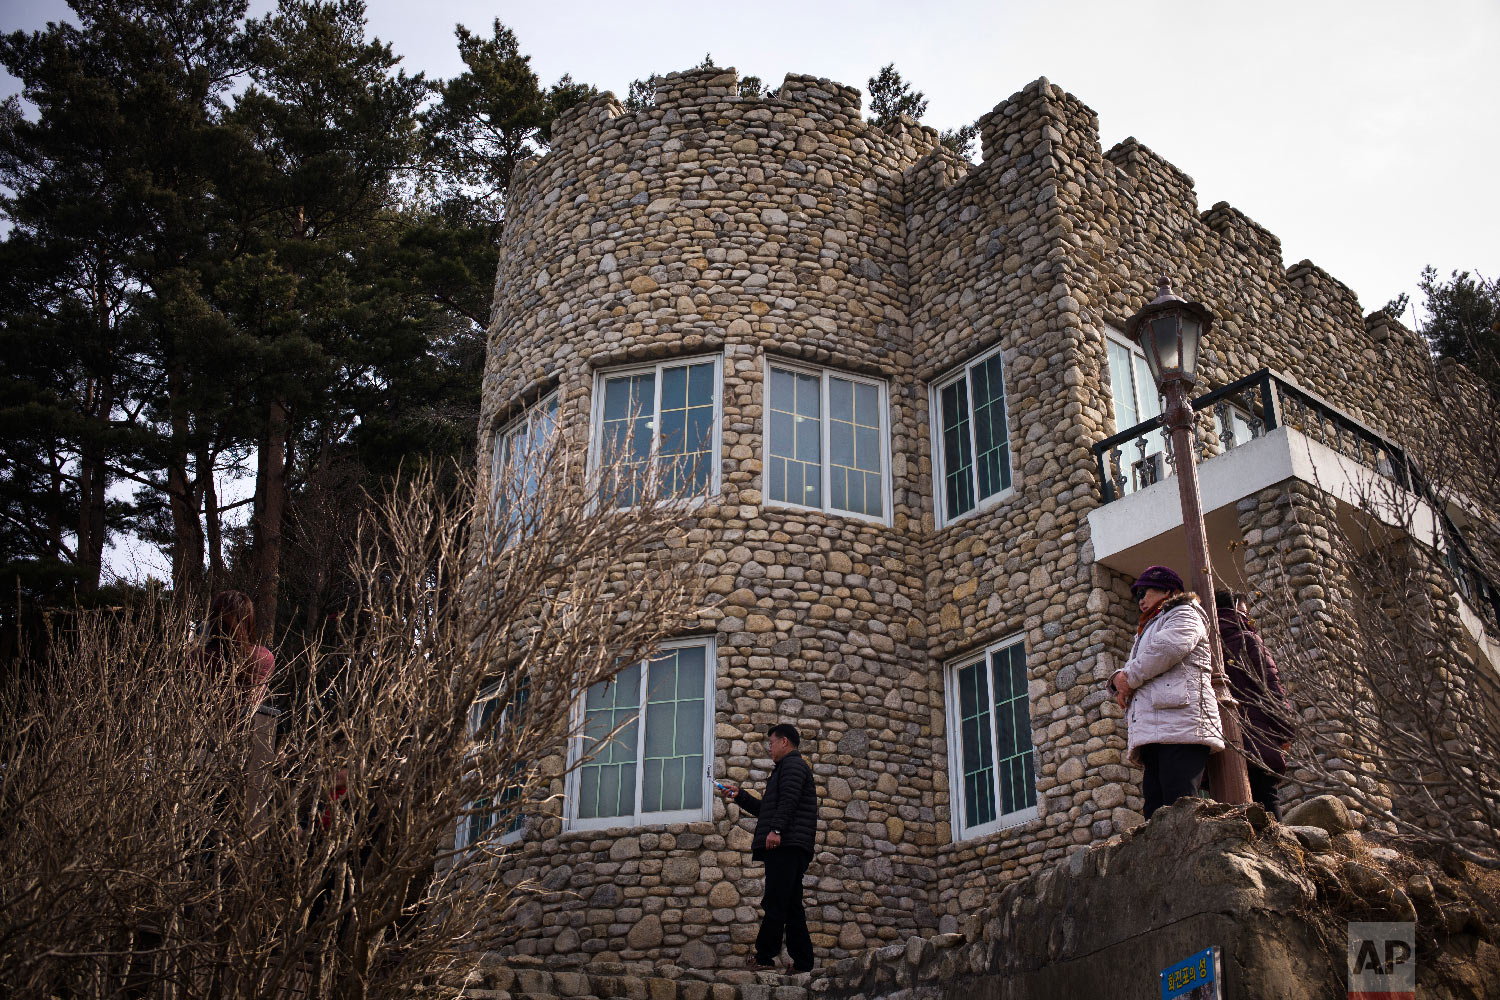 Visitors stand outside the villa known as Hwajinpo Castle, once a holiday home for late North Korea founder Kim Il Sung, at Hwajinpo Beach, South Korea, Monday, Feb. 19, 2018.(AP Photo/Jae C. Hong)